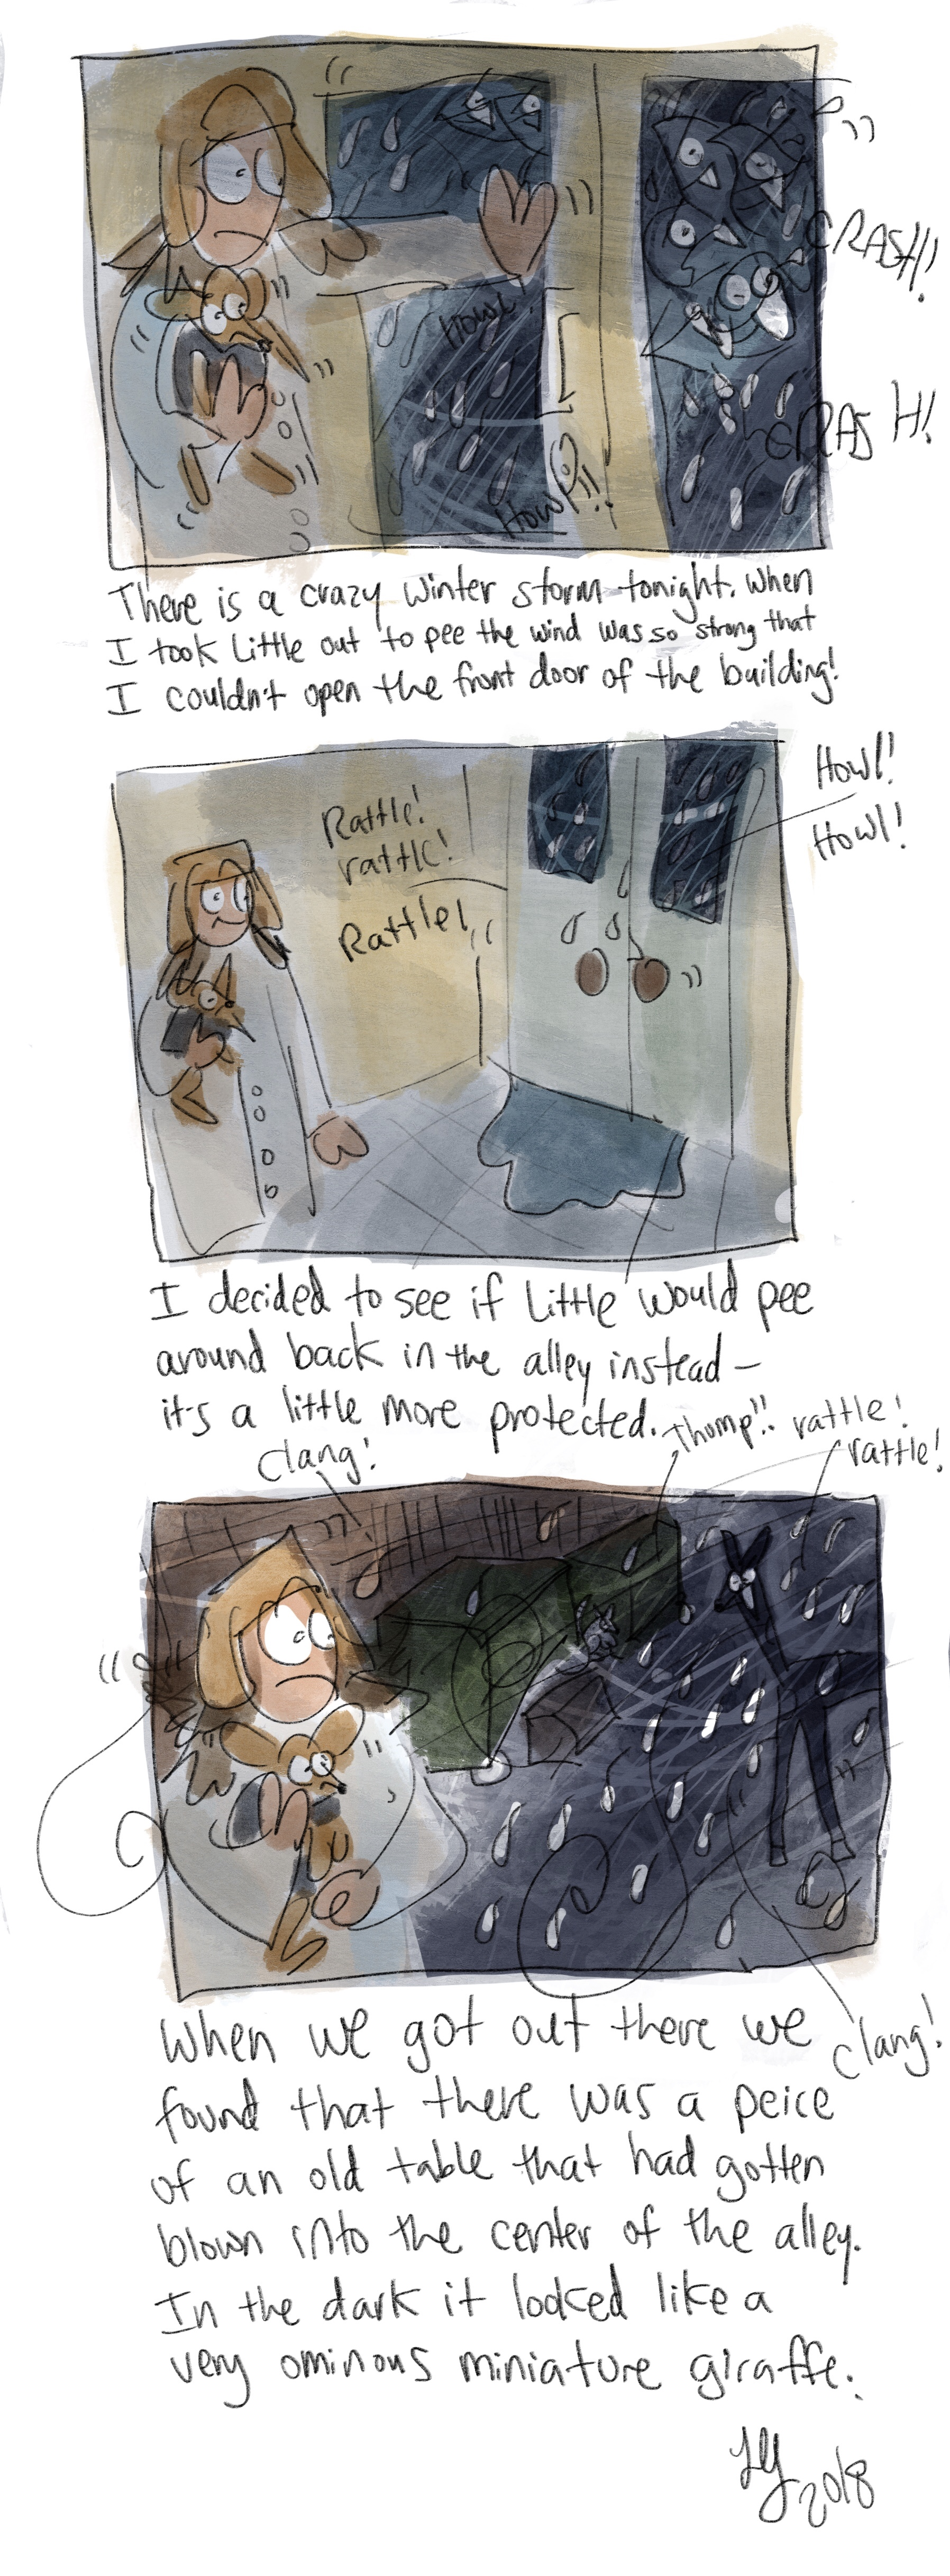 Living right by the lake sometimes we get some wild weather, especially in the winter. This is a comic about one of the winter storms that came through. My dog refused to pee that night and I don't blame her. There was a piece of furniture that blew into the alley and it looked like a miniature giraffe.